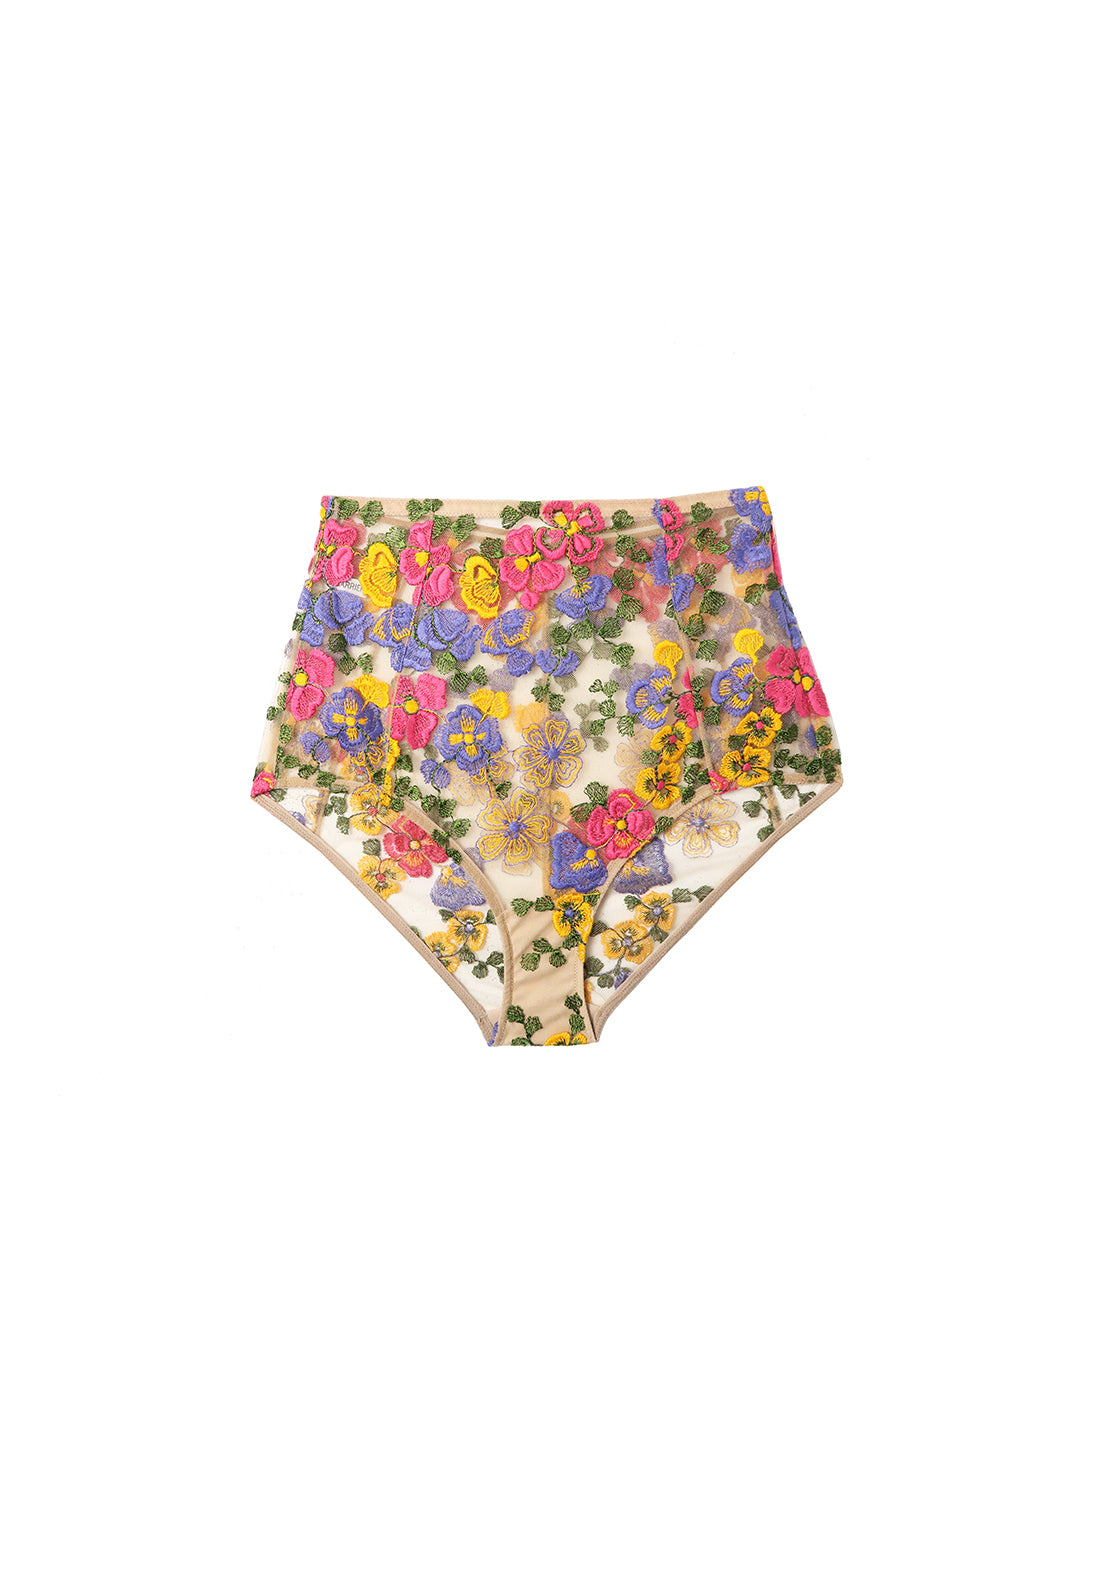 Wonderland Delights High Waist Brief in Tuscan Summer - I.D. Sarrieri